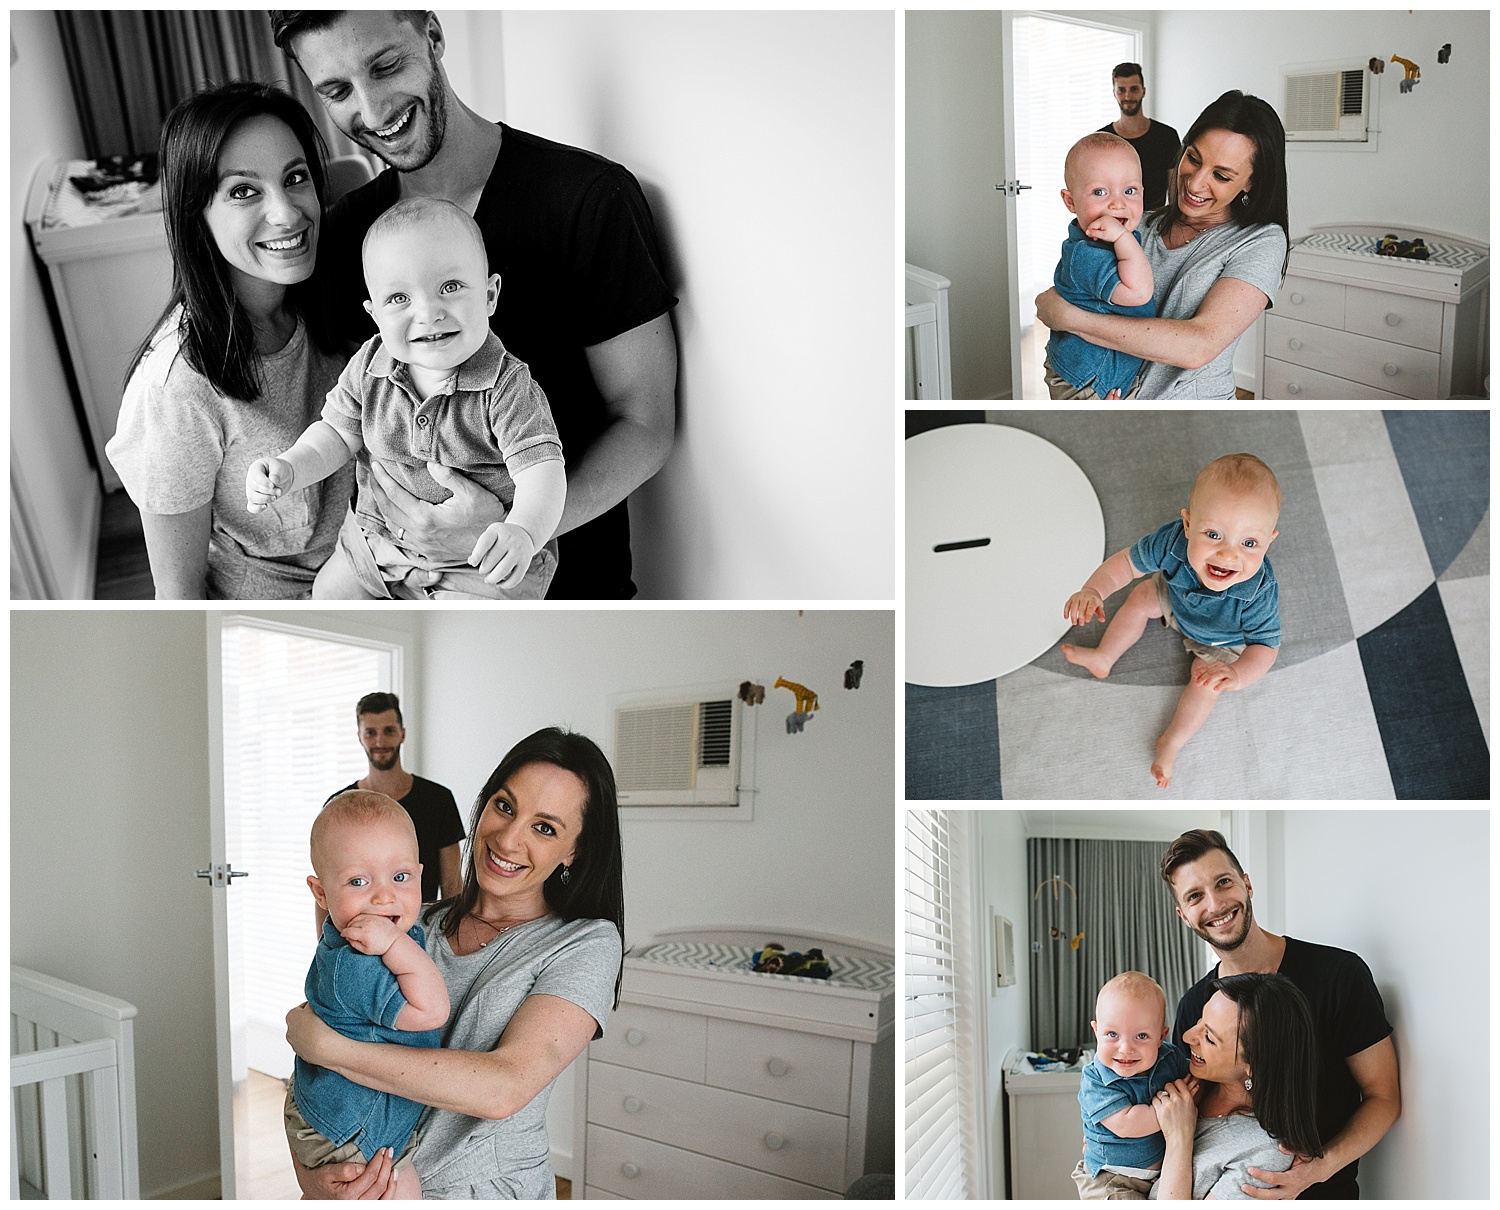 Caufield baby and family photoshoot - mum holding baby